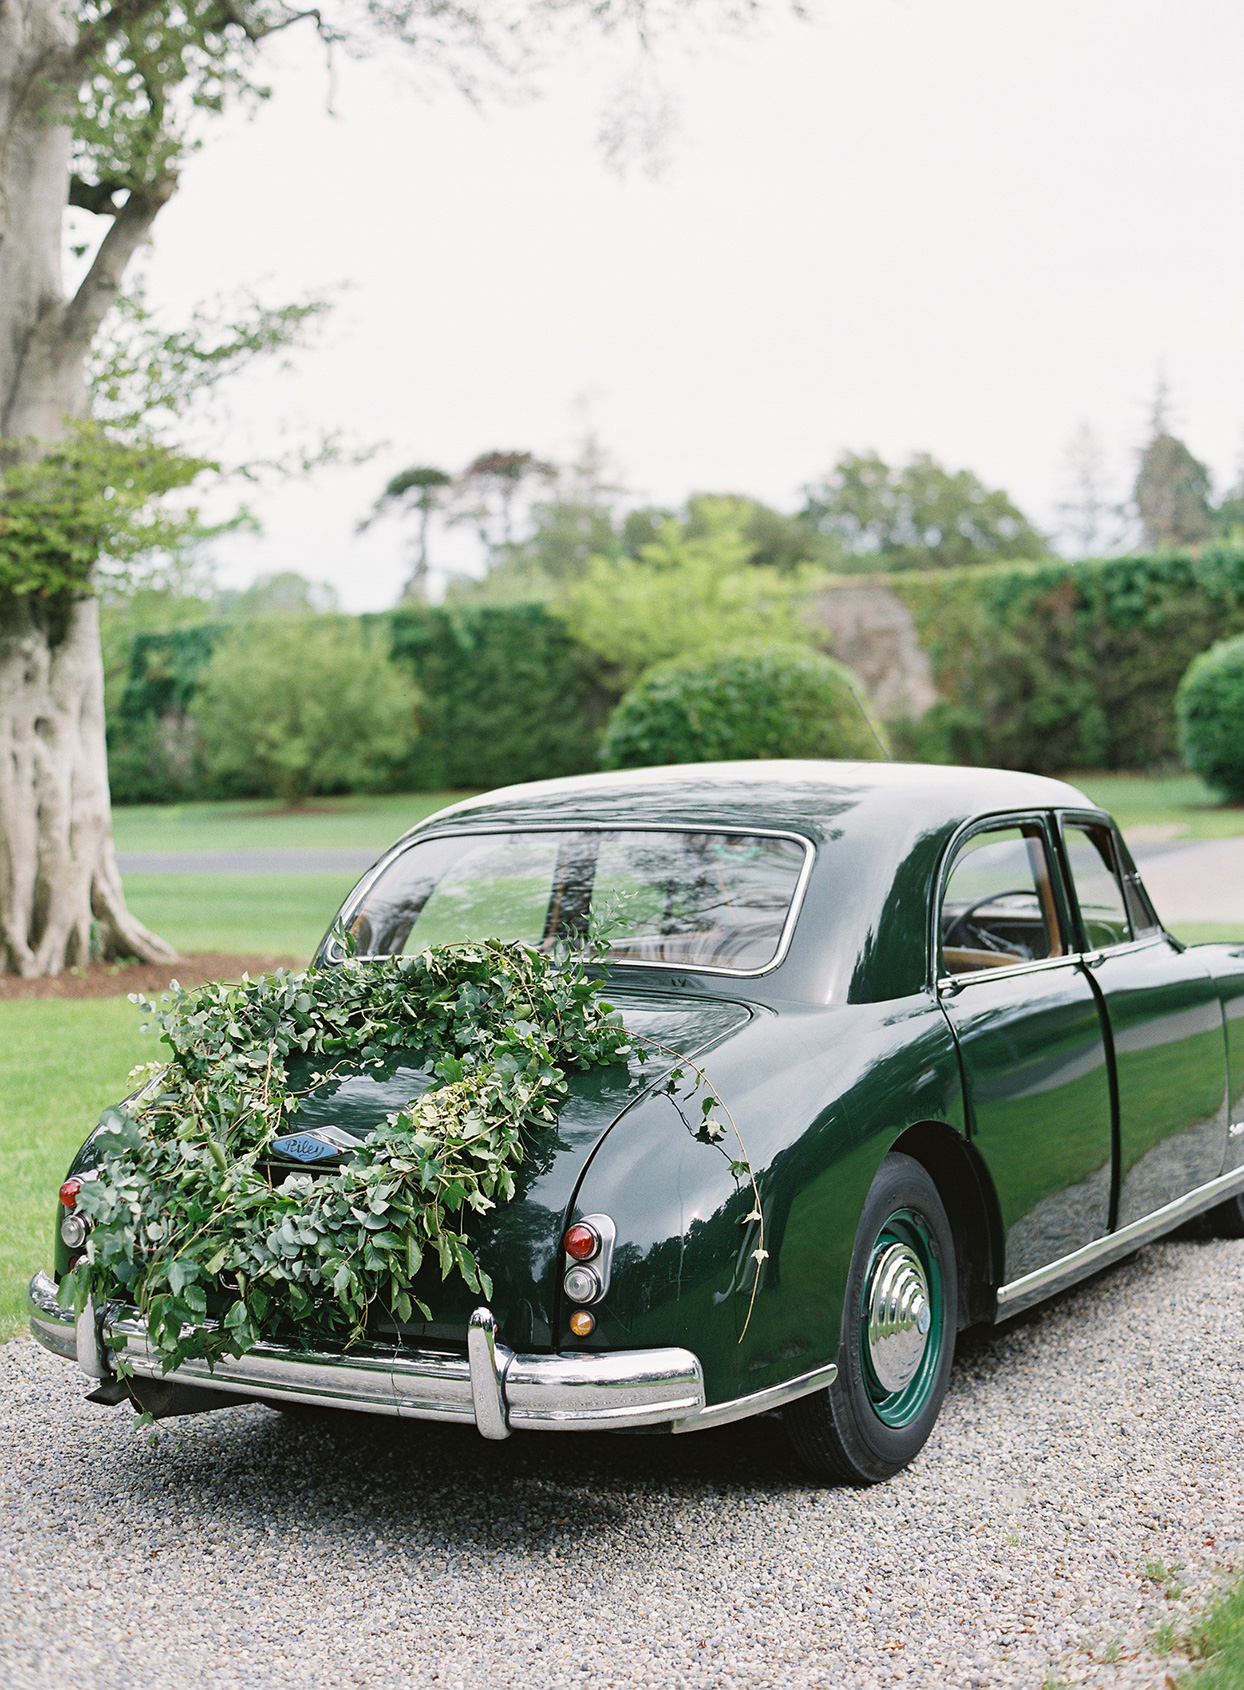 green vintage care with large greenery display on trunk